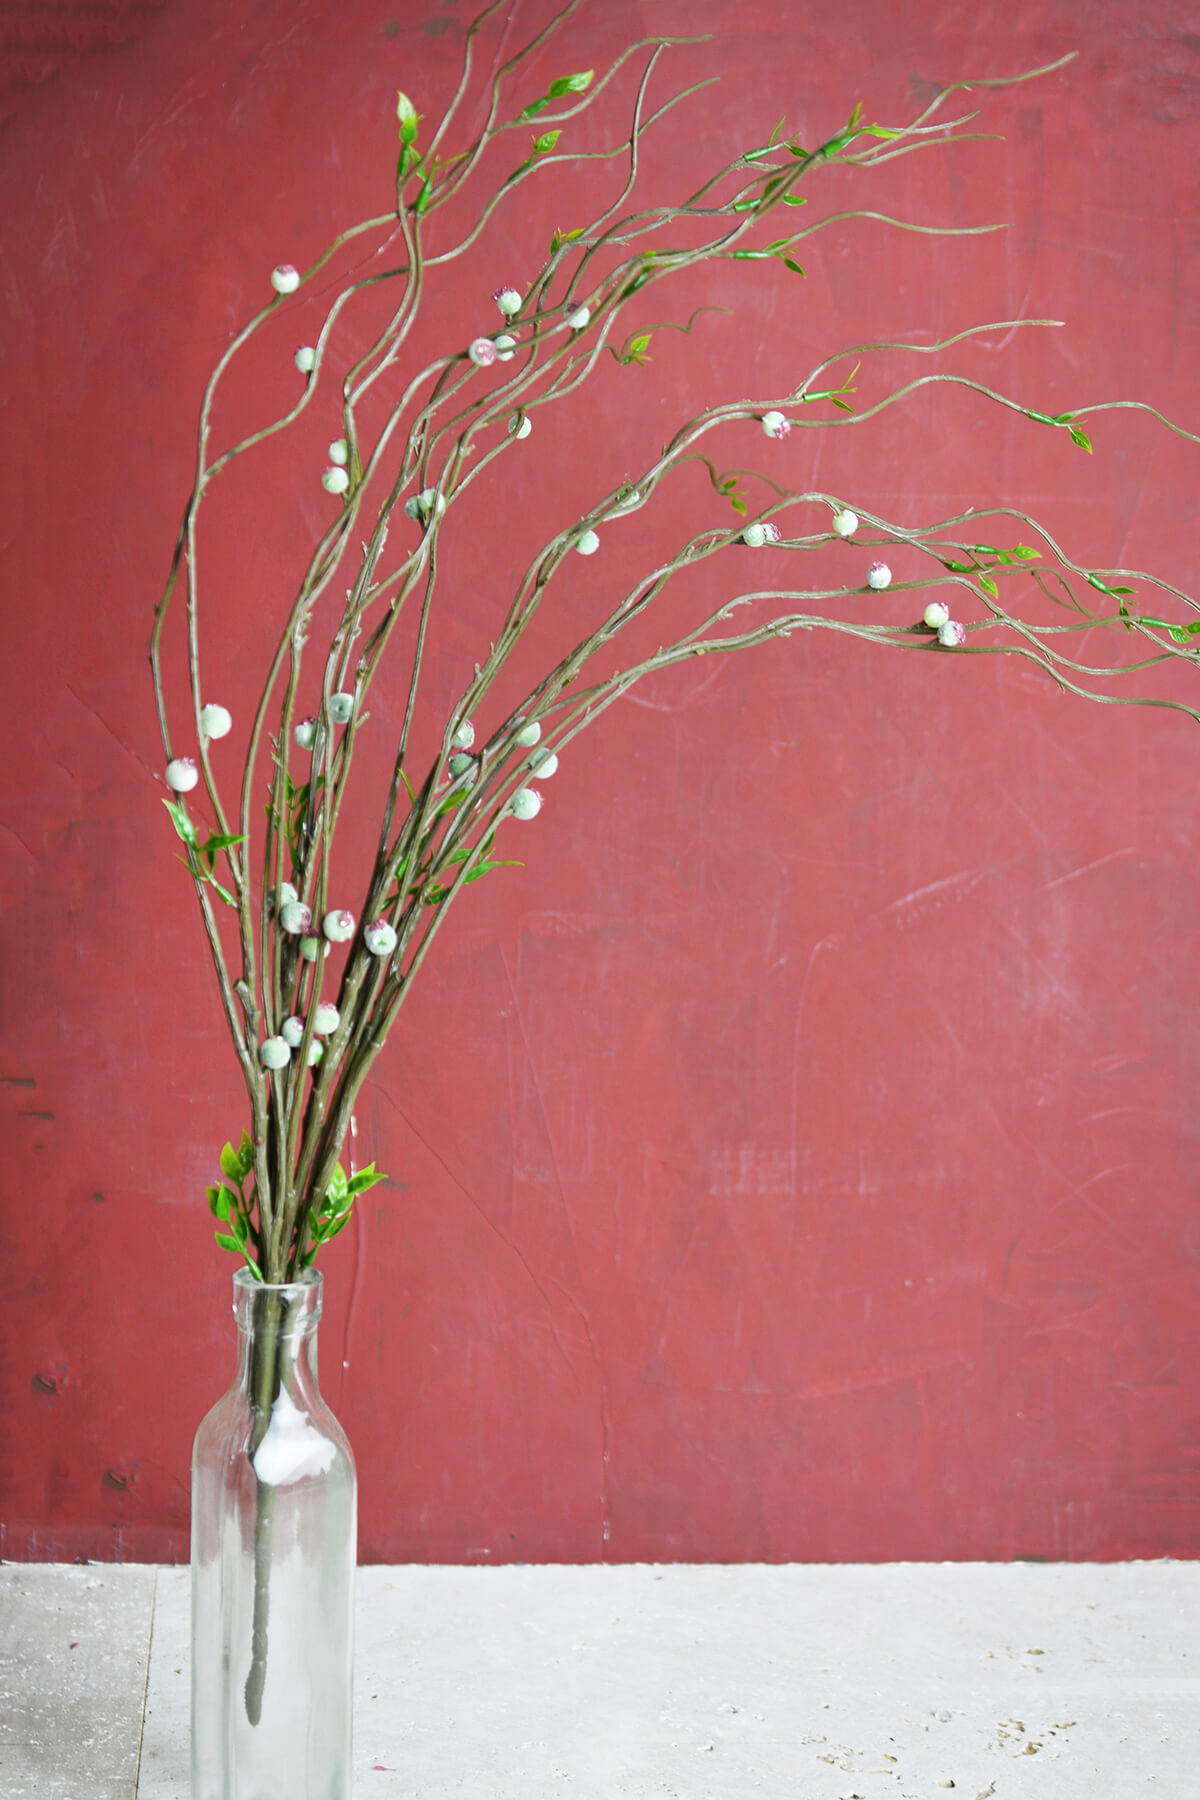 Artificial Curly Willow Branch With Leaves